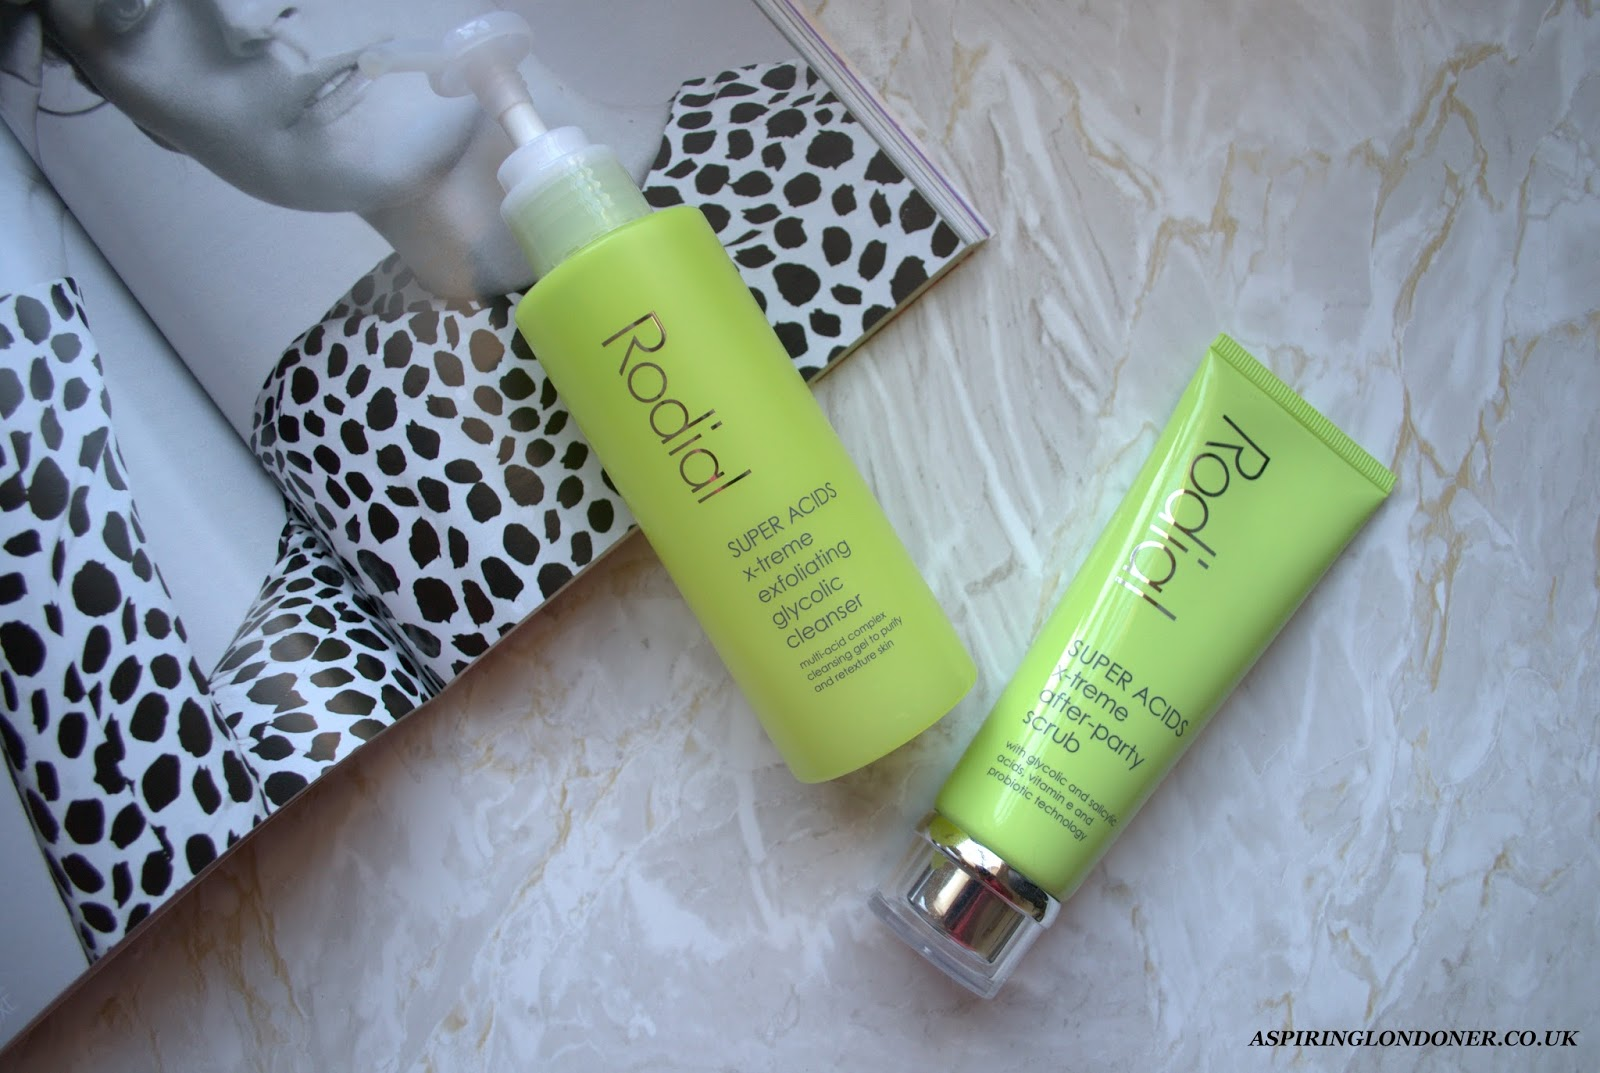 Rodial Super Acids X-treme Cleanser & Scrub Review - Aspiring Londoner